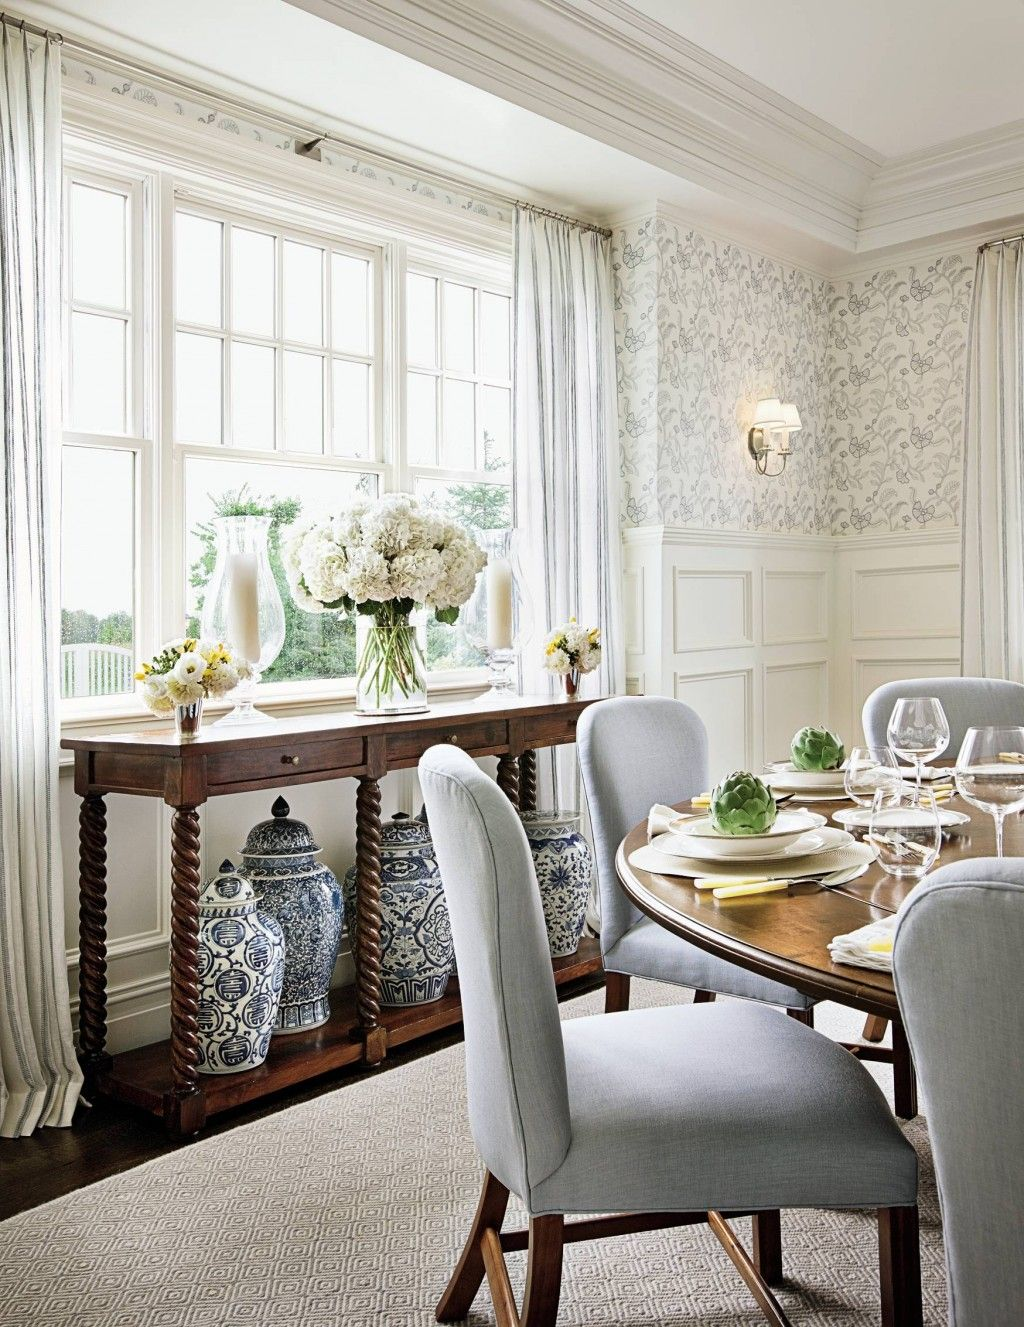 Beau Dining Room Dreaming   Beautiful Dining Room Designed By Alexa Hampton In  Architectural Digest